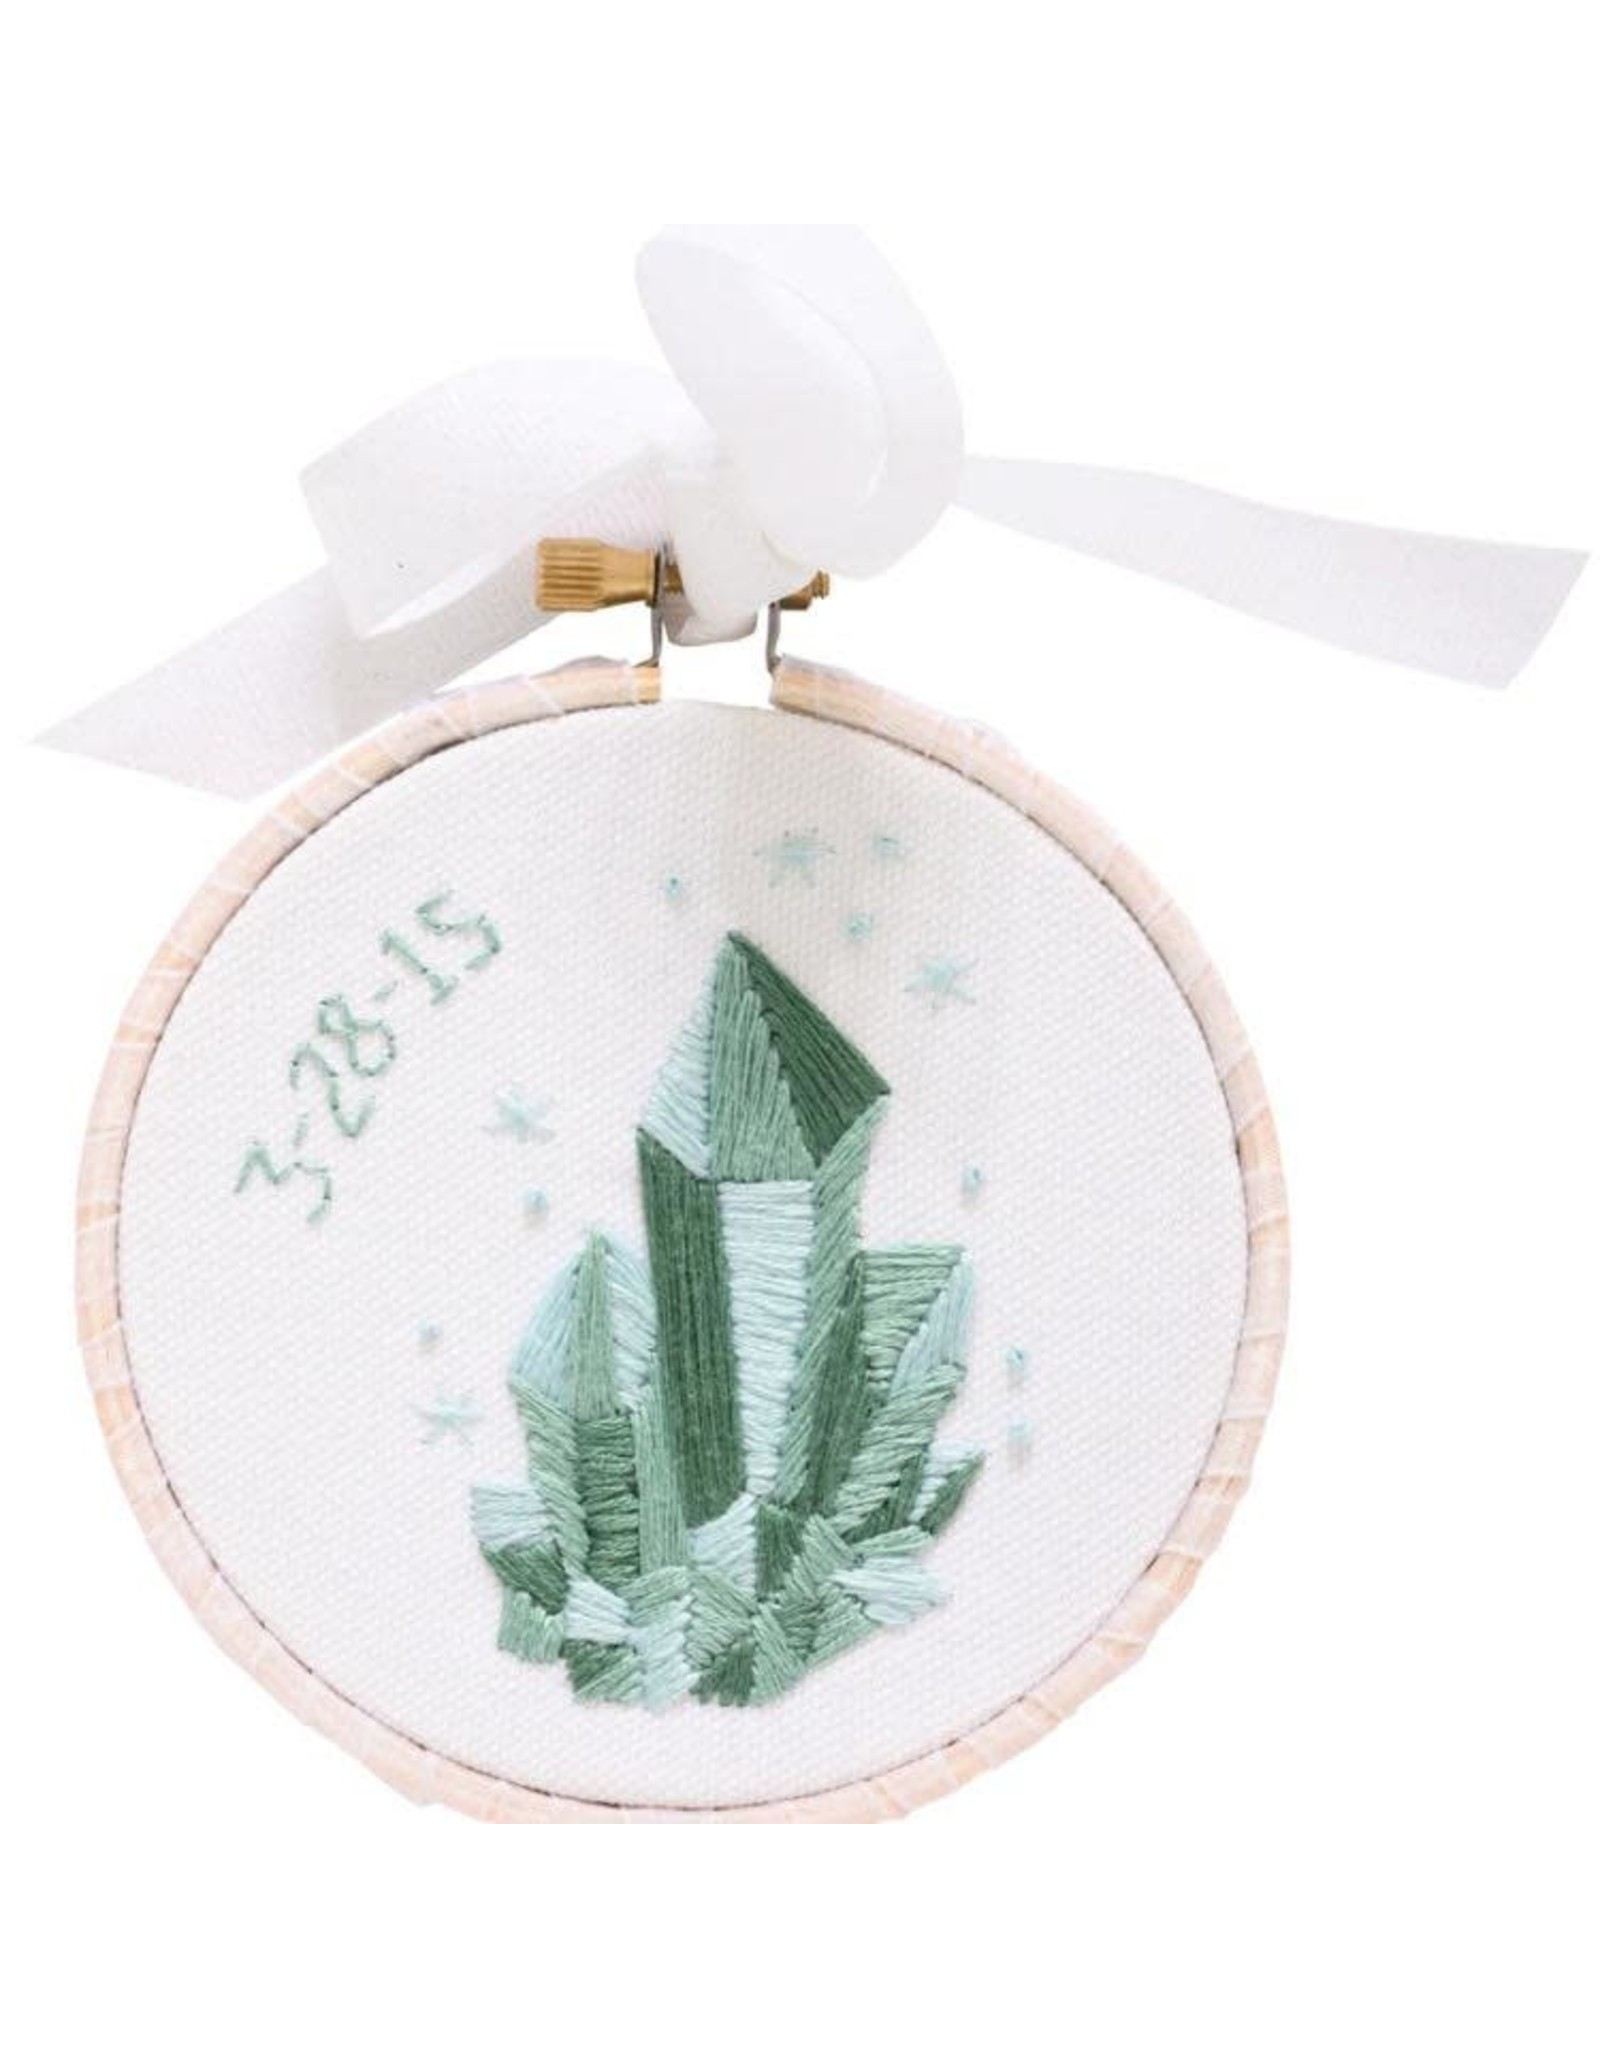 Aimee Ray Doodle Stitching Embroidery Art